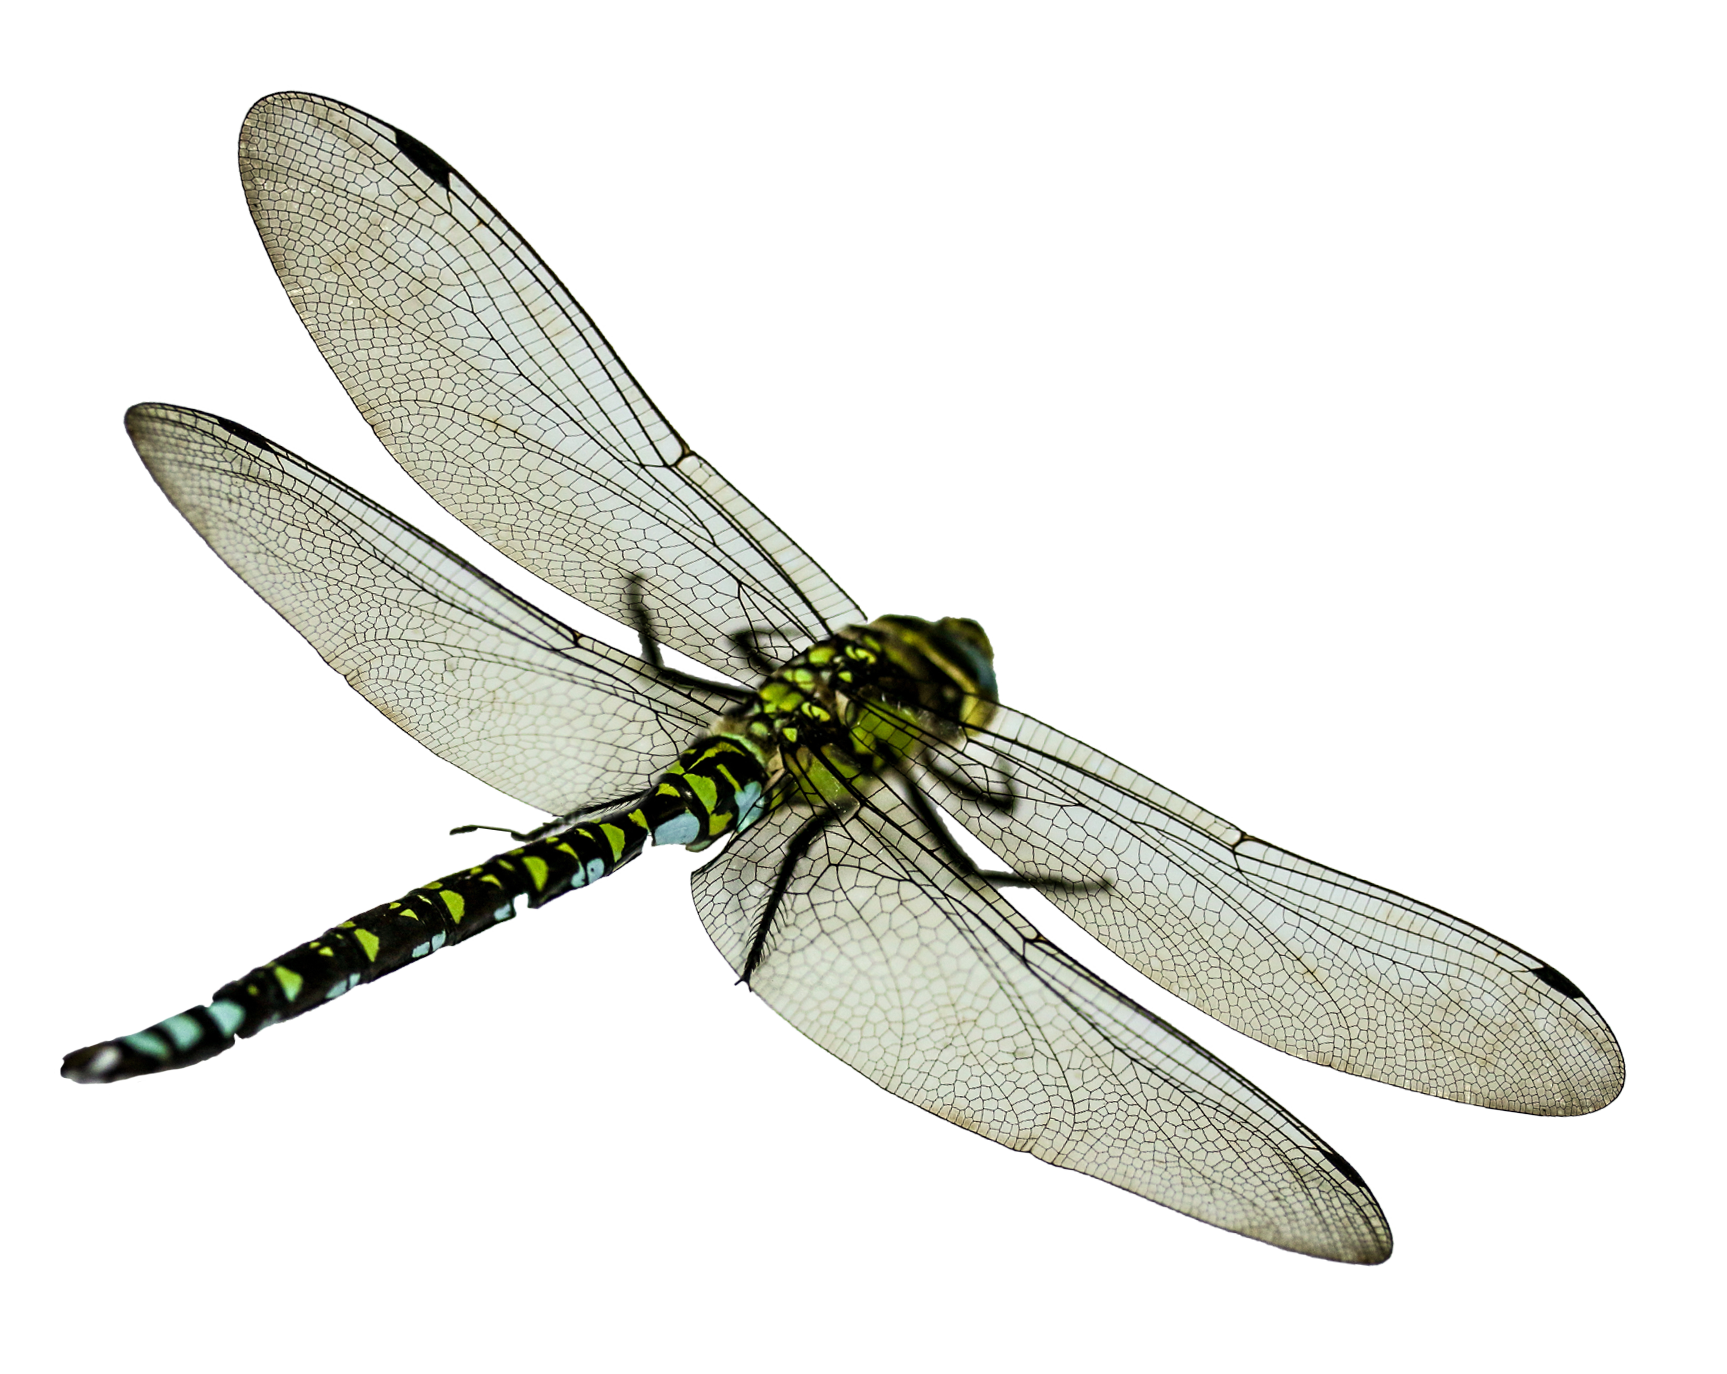 Dragonfly transparent high resolution. Png image purepng free